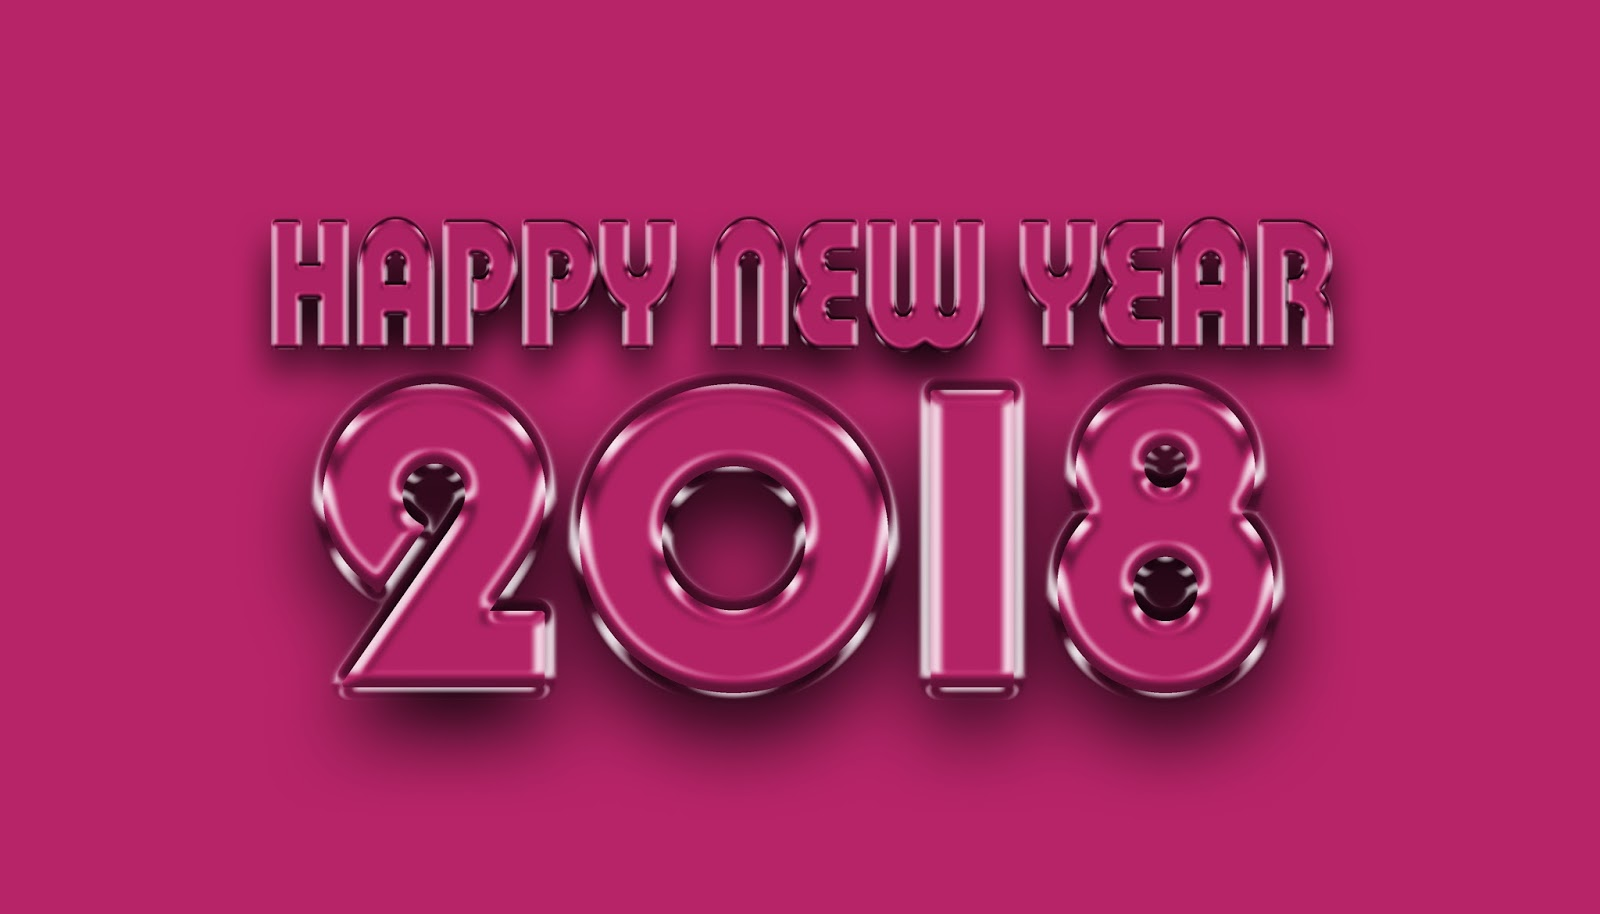 in this post we are sharing 30 beautiful new year 2018 wallpapers which you can use to prettify your desktop